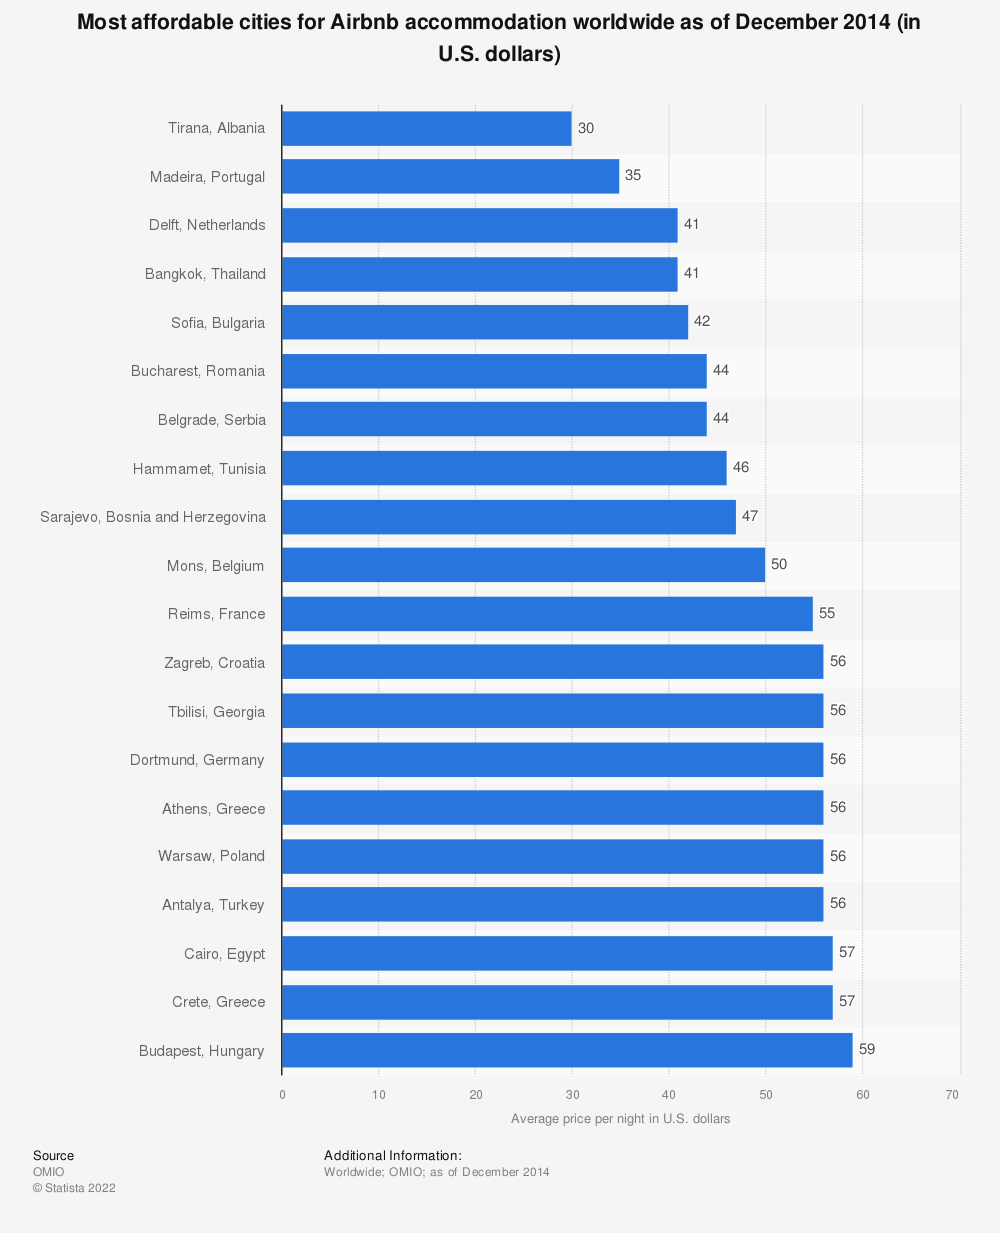 Statistic: Most affordable cities for Airbnb accommodation worldwide as of December 2014 (in U.S. dollars) | Statista